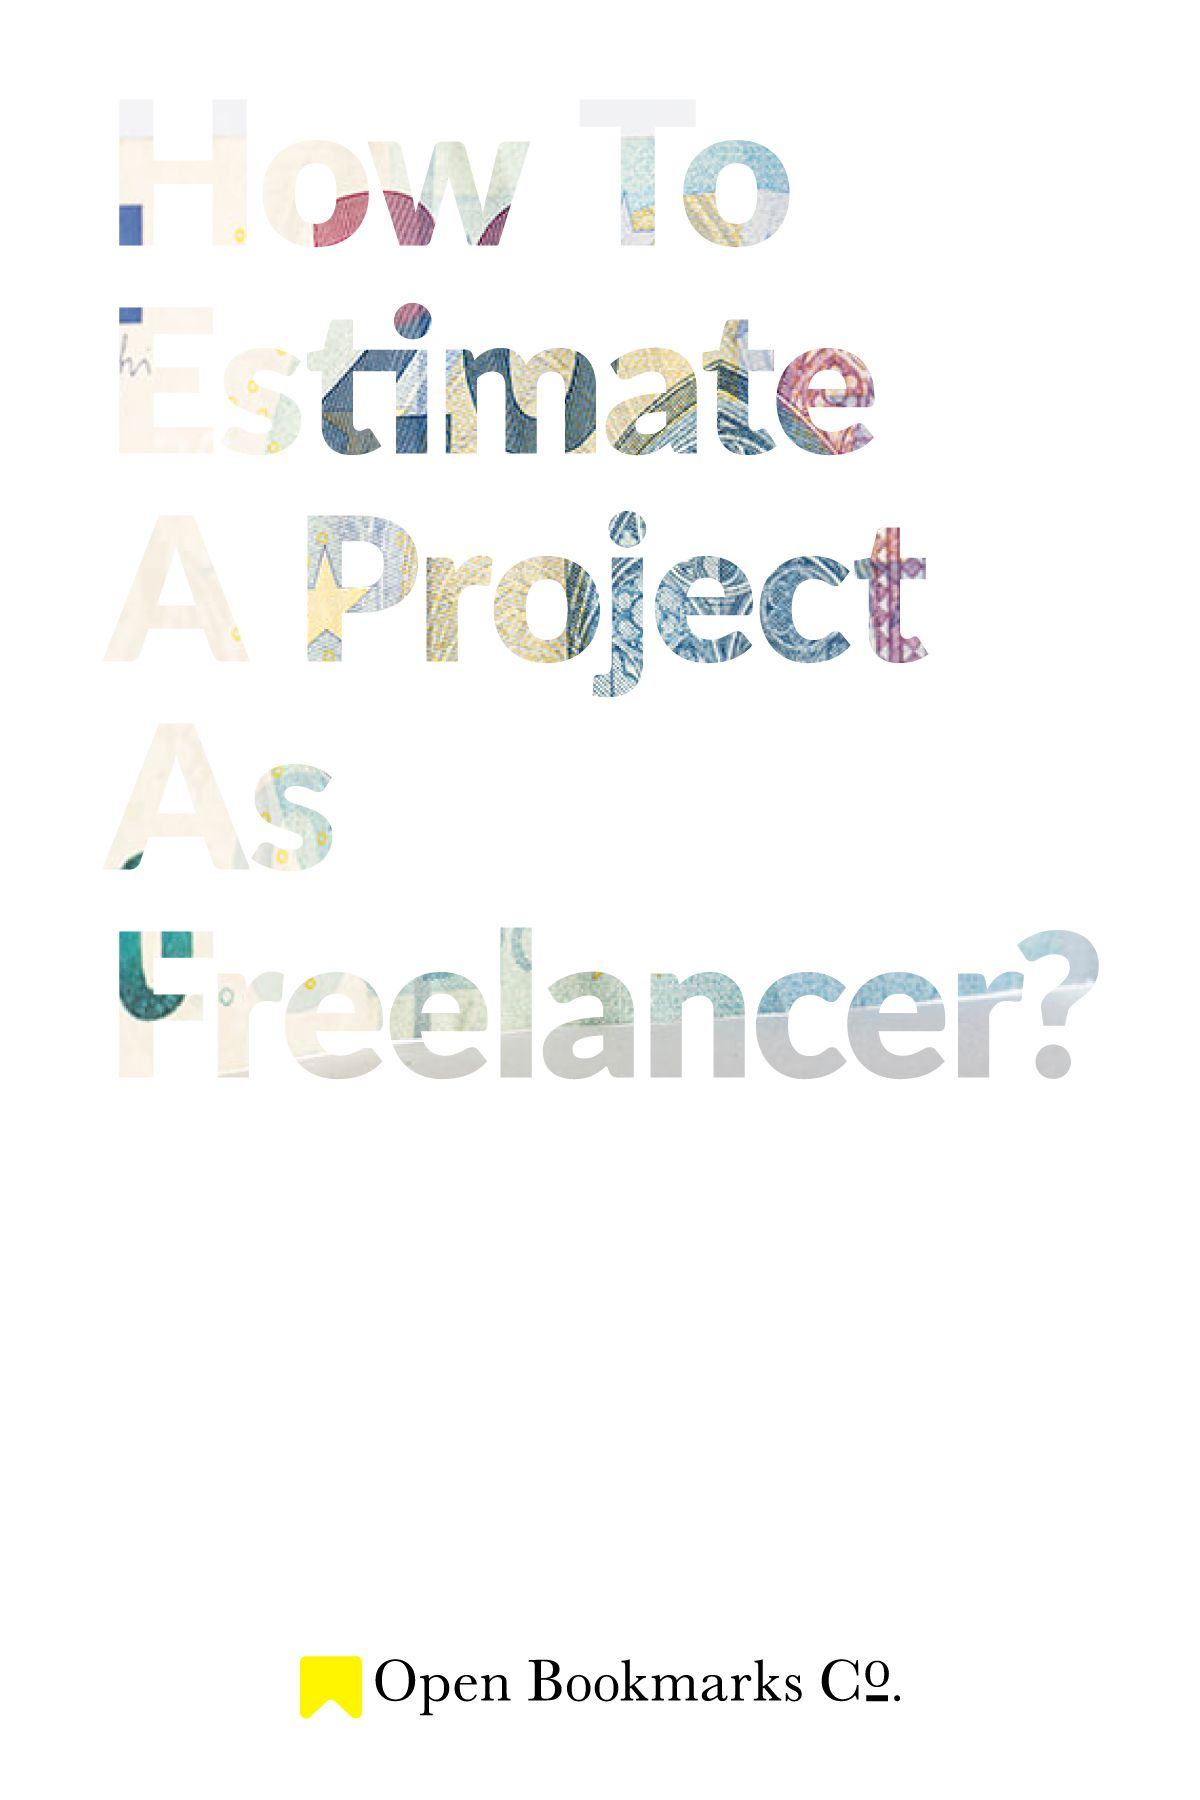 How To Estimate A Project As Freelancer Freelance Graphic Design Freelance Web Design Graphic Design Projects